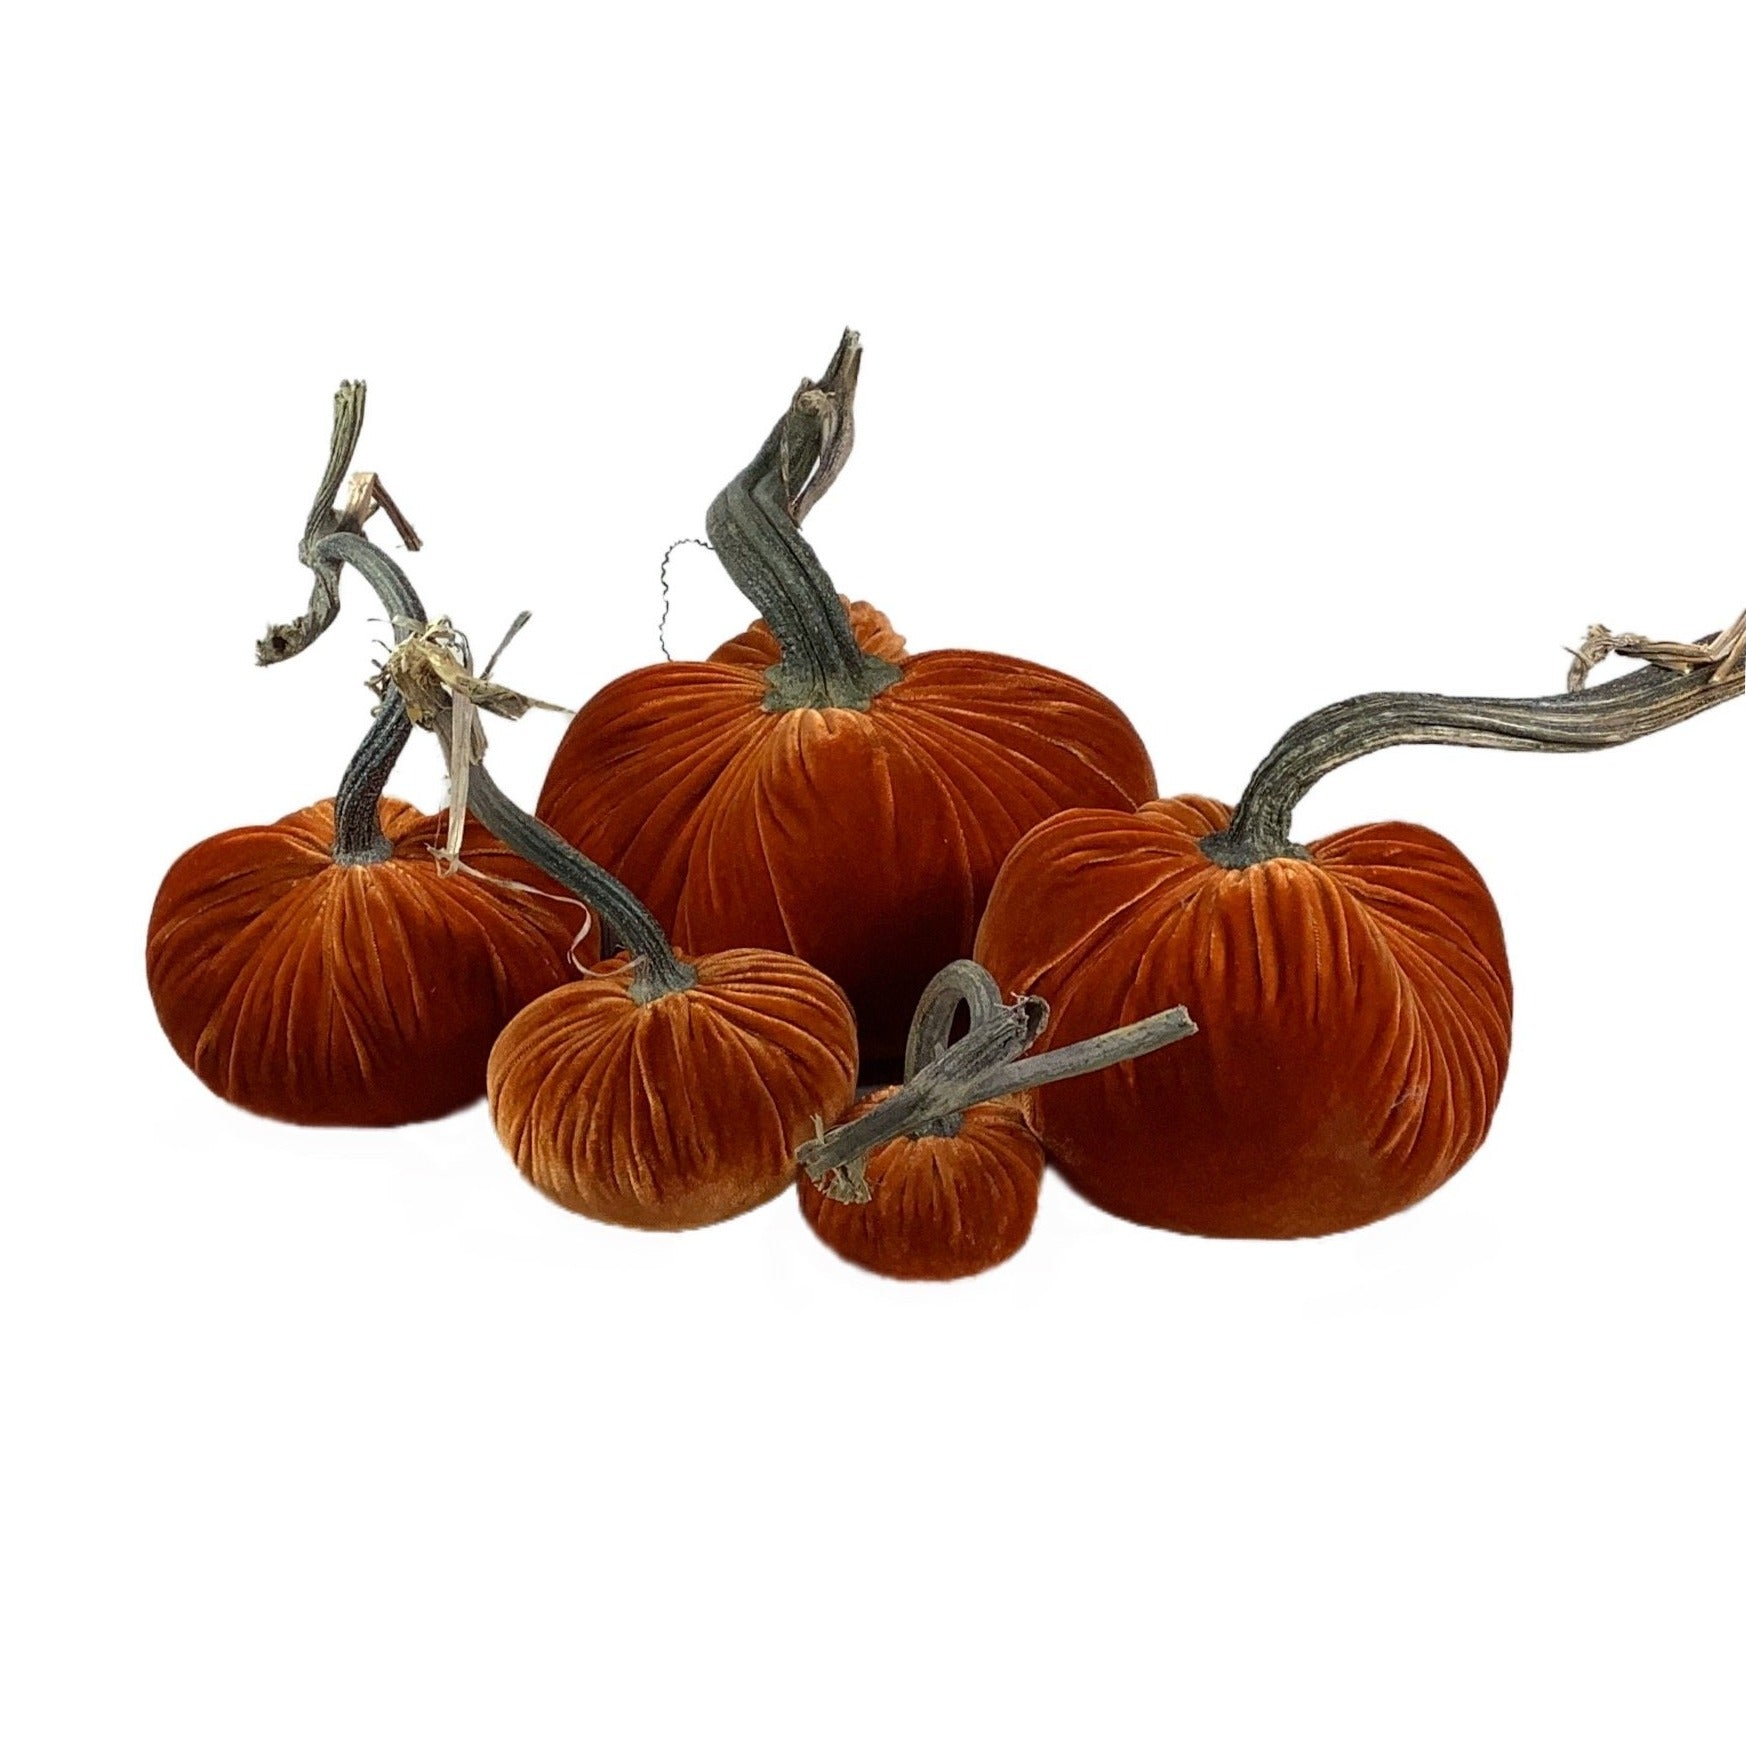 Velvet Decorative Pumpkin in Persimmon